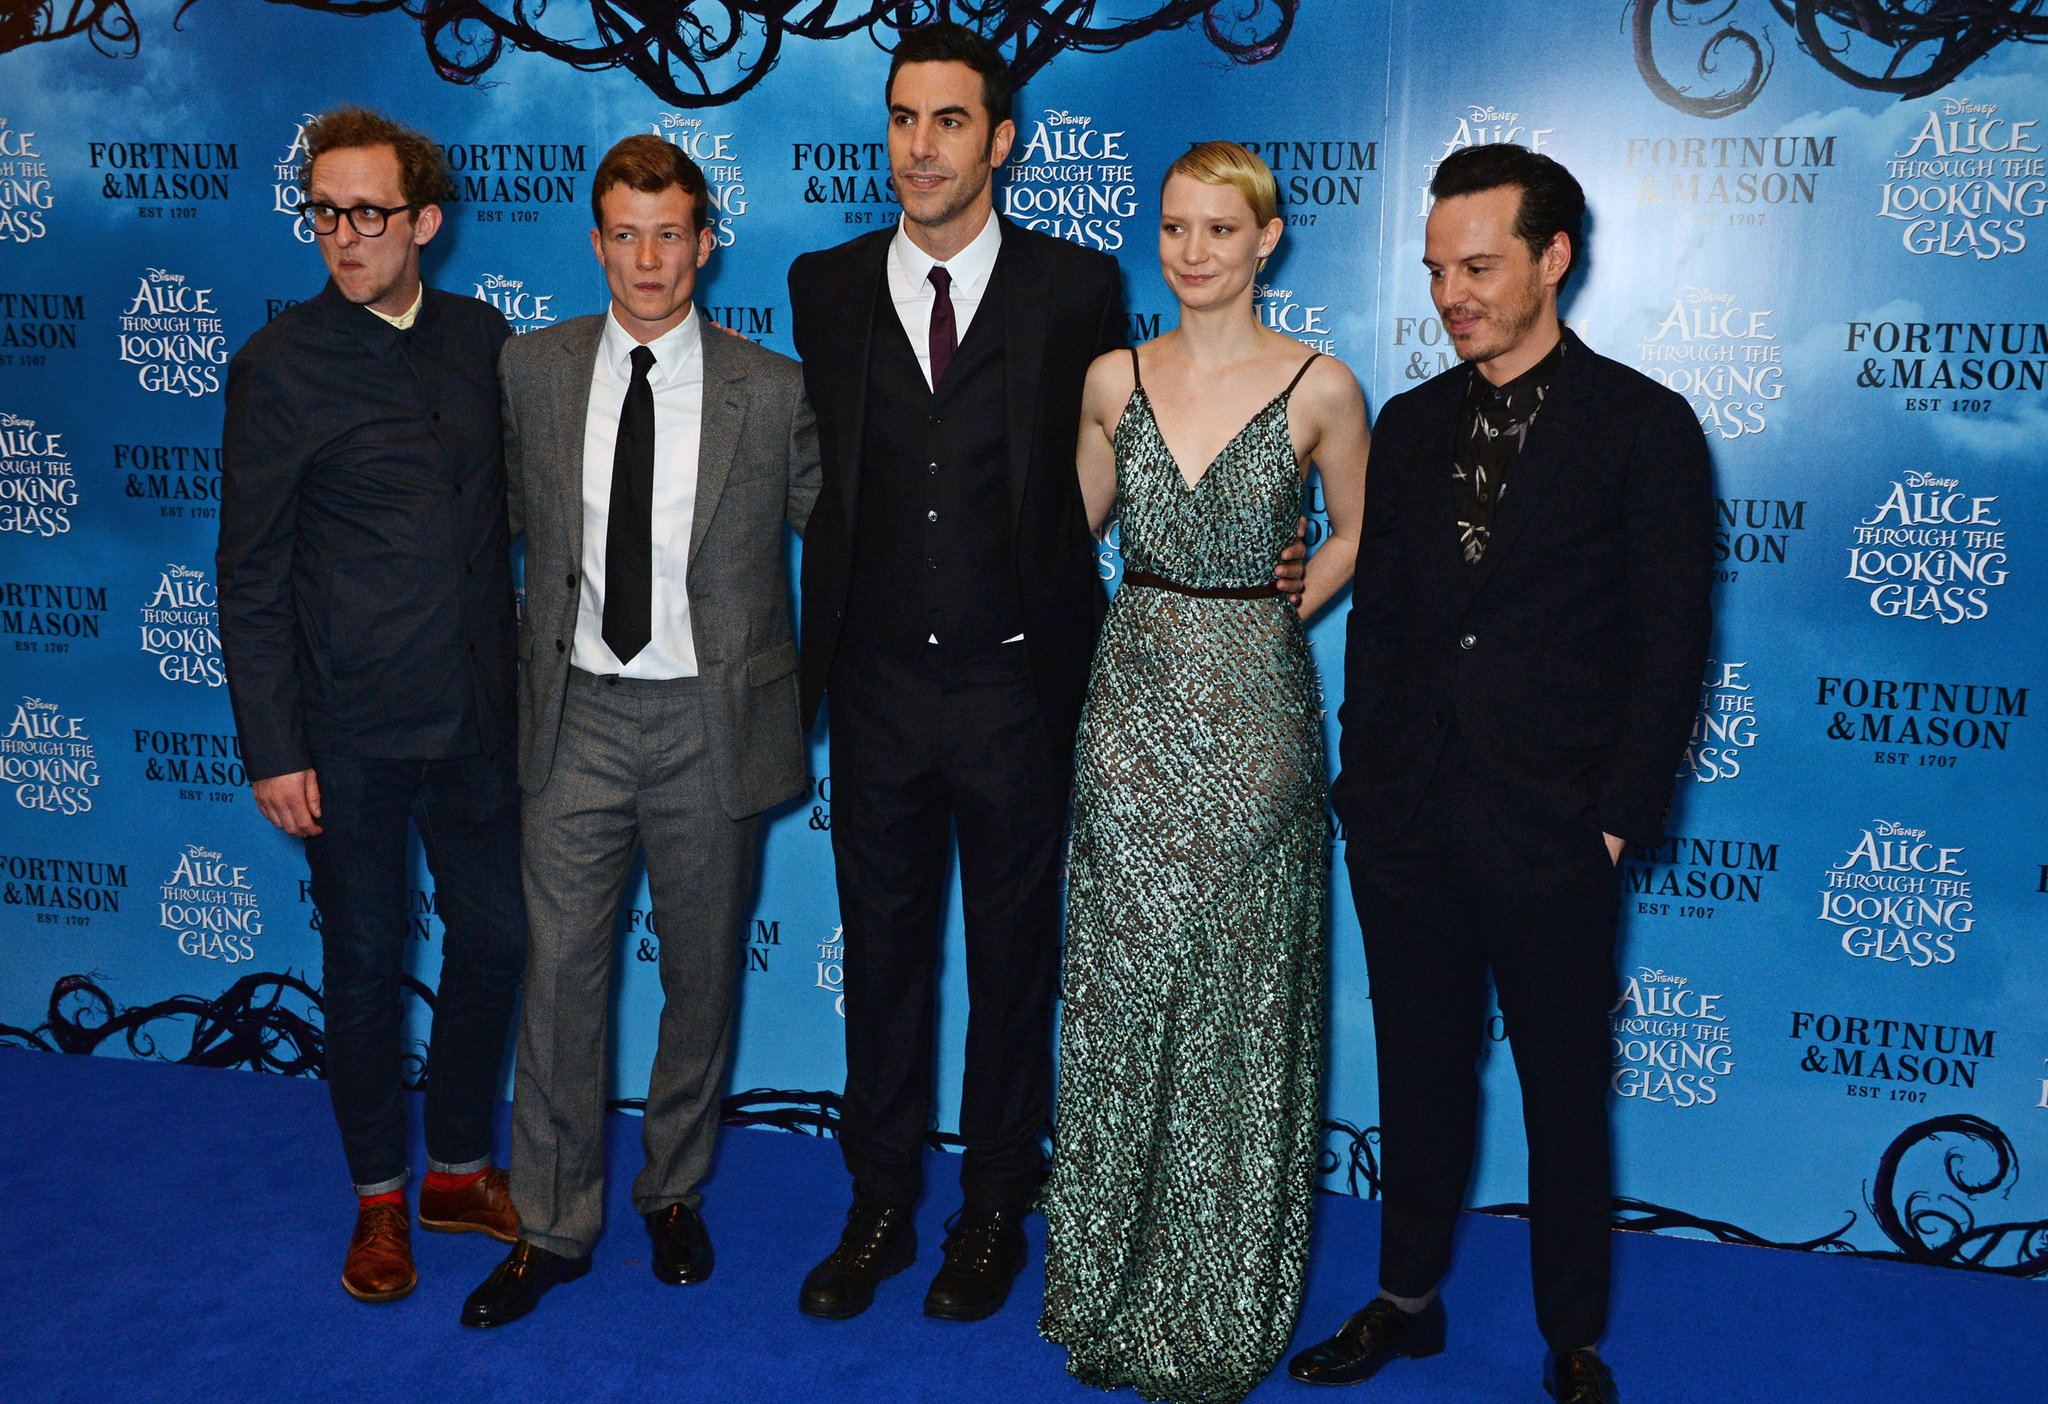 Sacha Baron Cohen, Andrew Scott, Leo Bill, Ed Speleers, and Mia Wasikowska at an event for Alice Through the Looking Glass (2016)